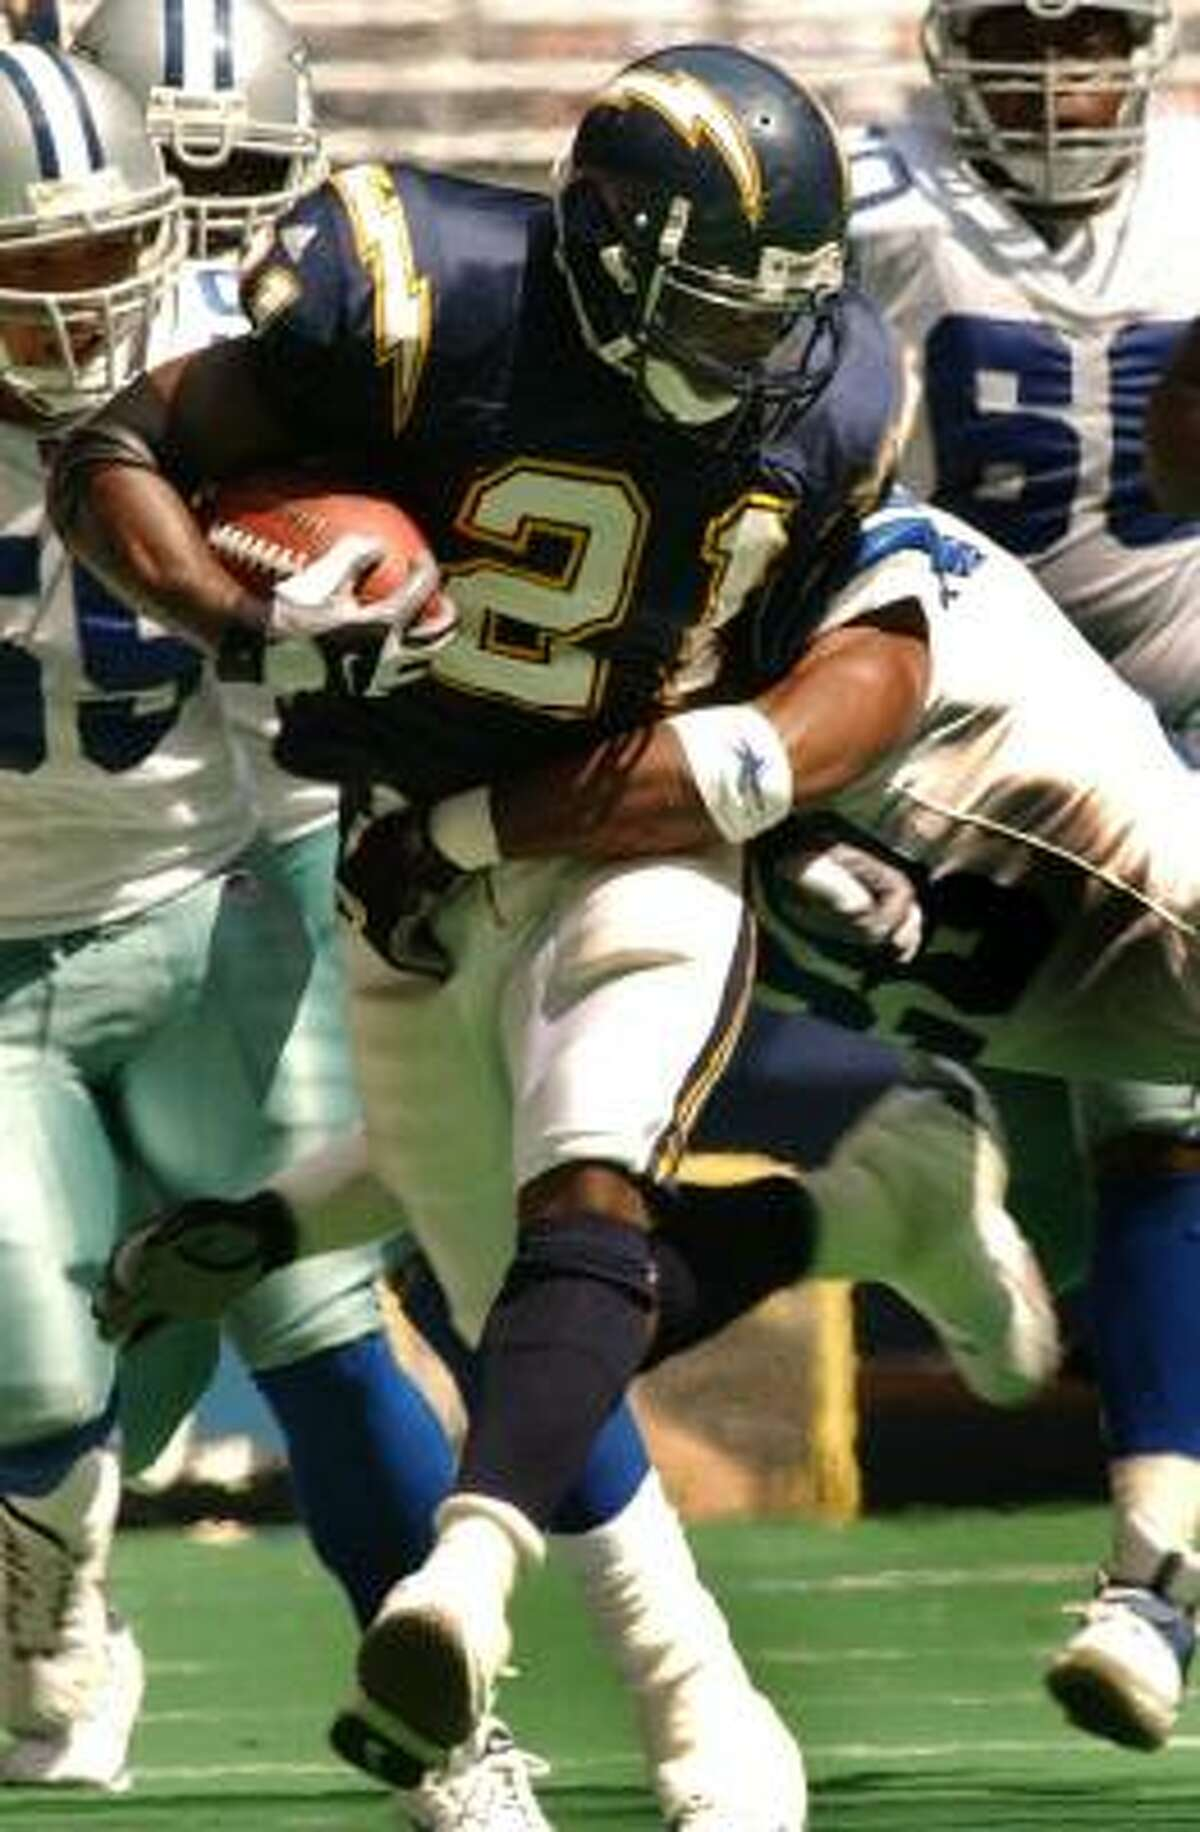 LT was the fifth overall pick in the 2001 NFL Draft. He rushed for 1,236 yards and scored 10 touchdowns during his rookie year.